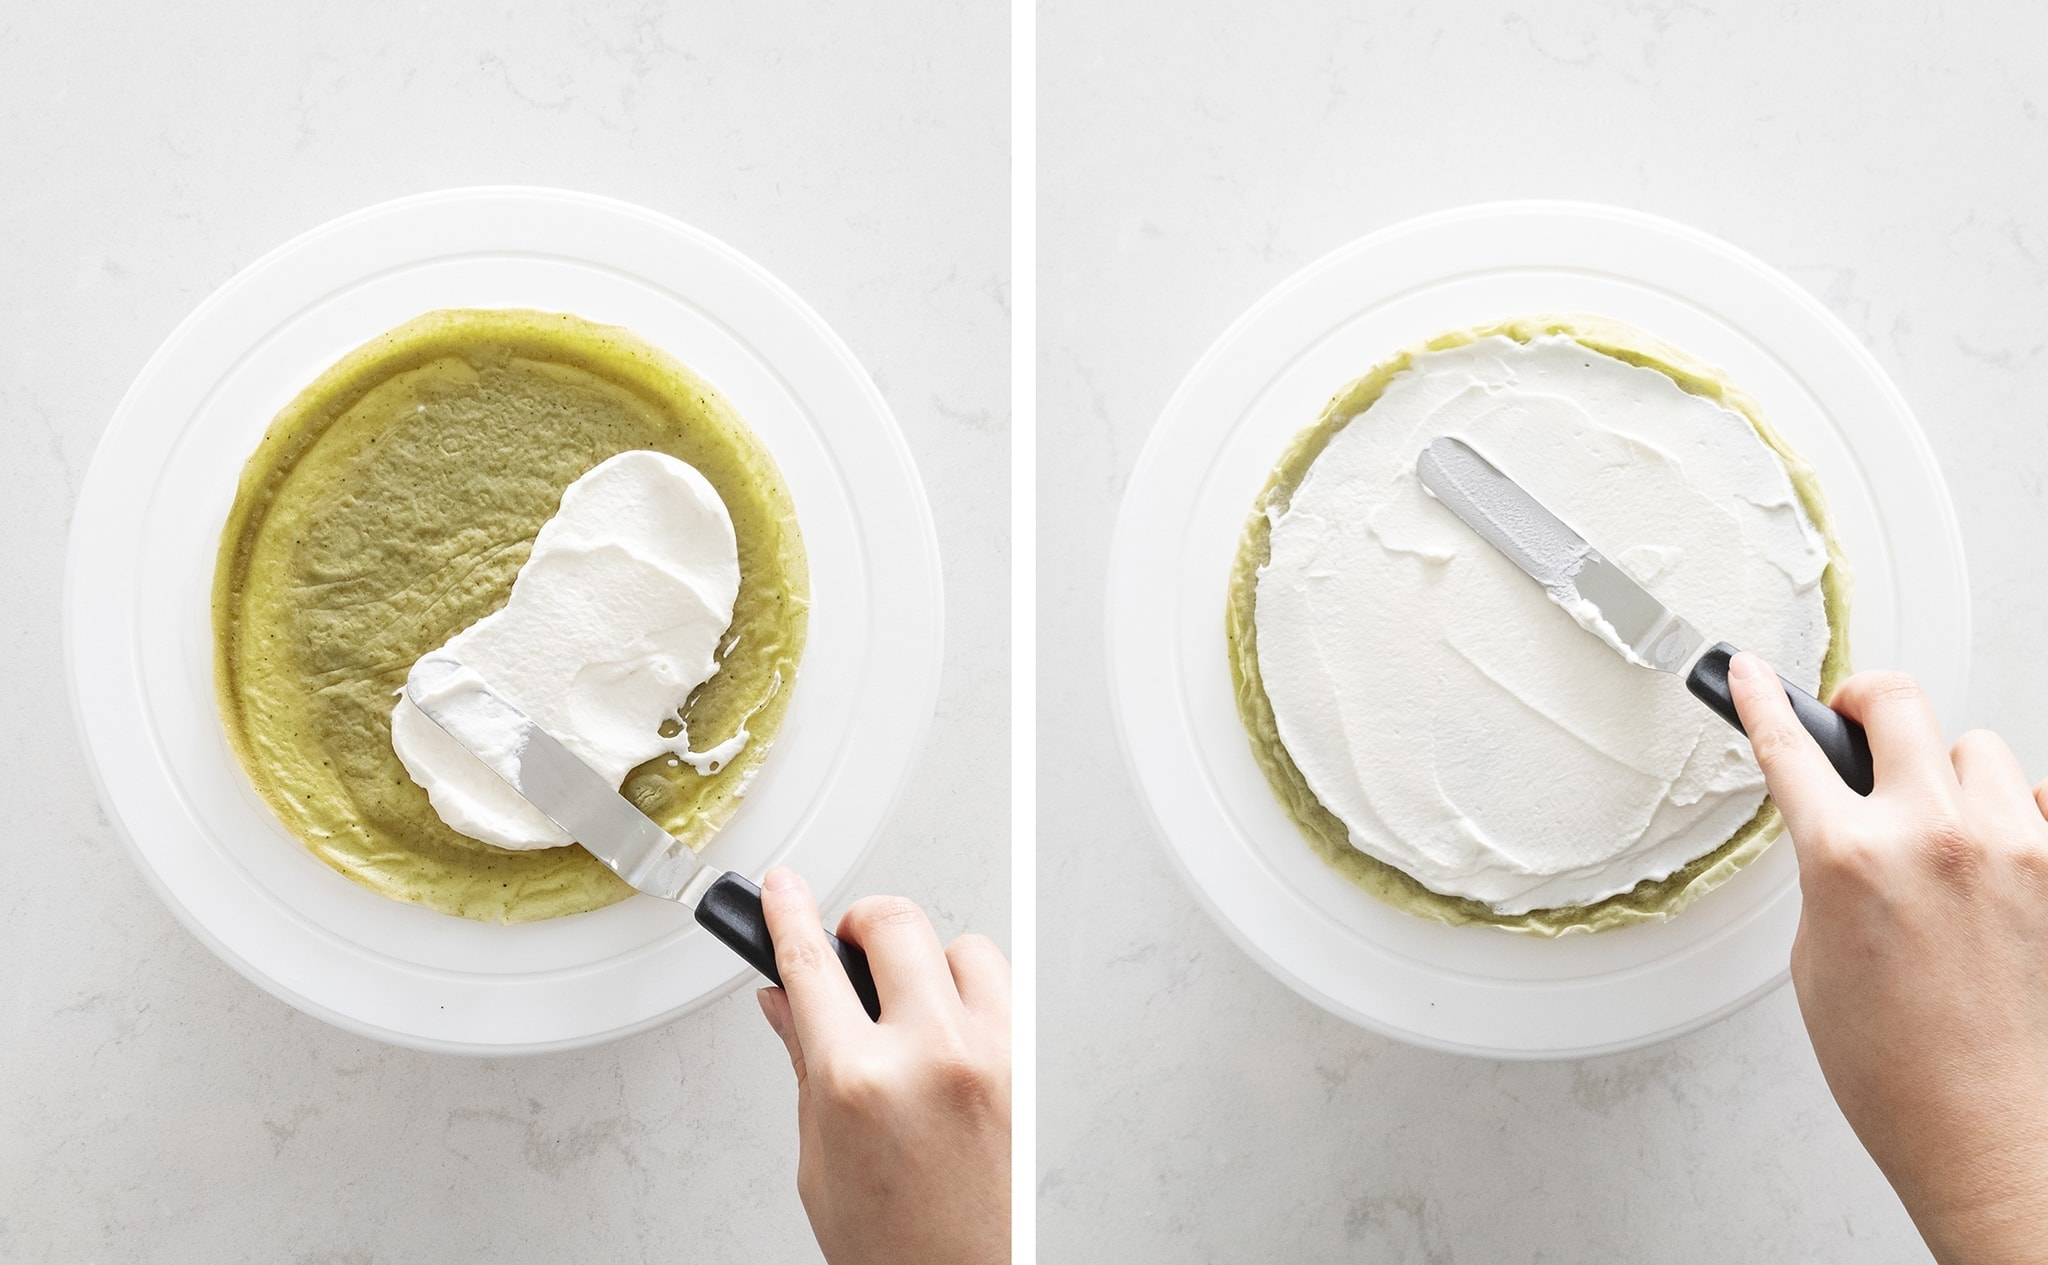 Spreading whipped cream on crepe layer